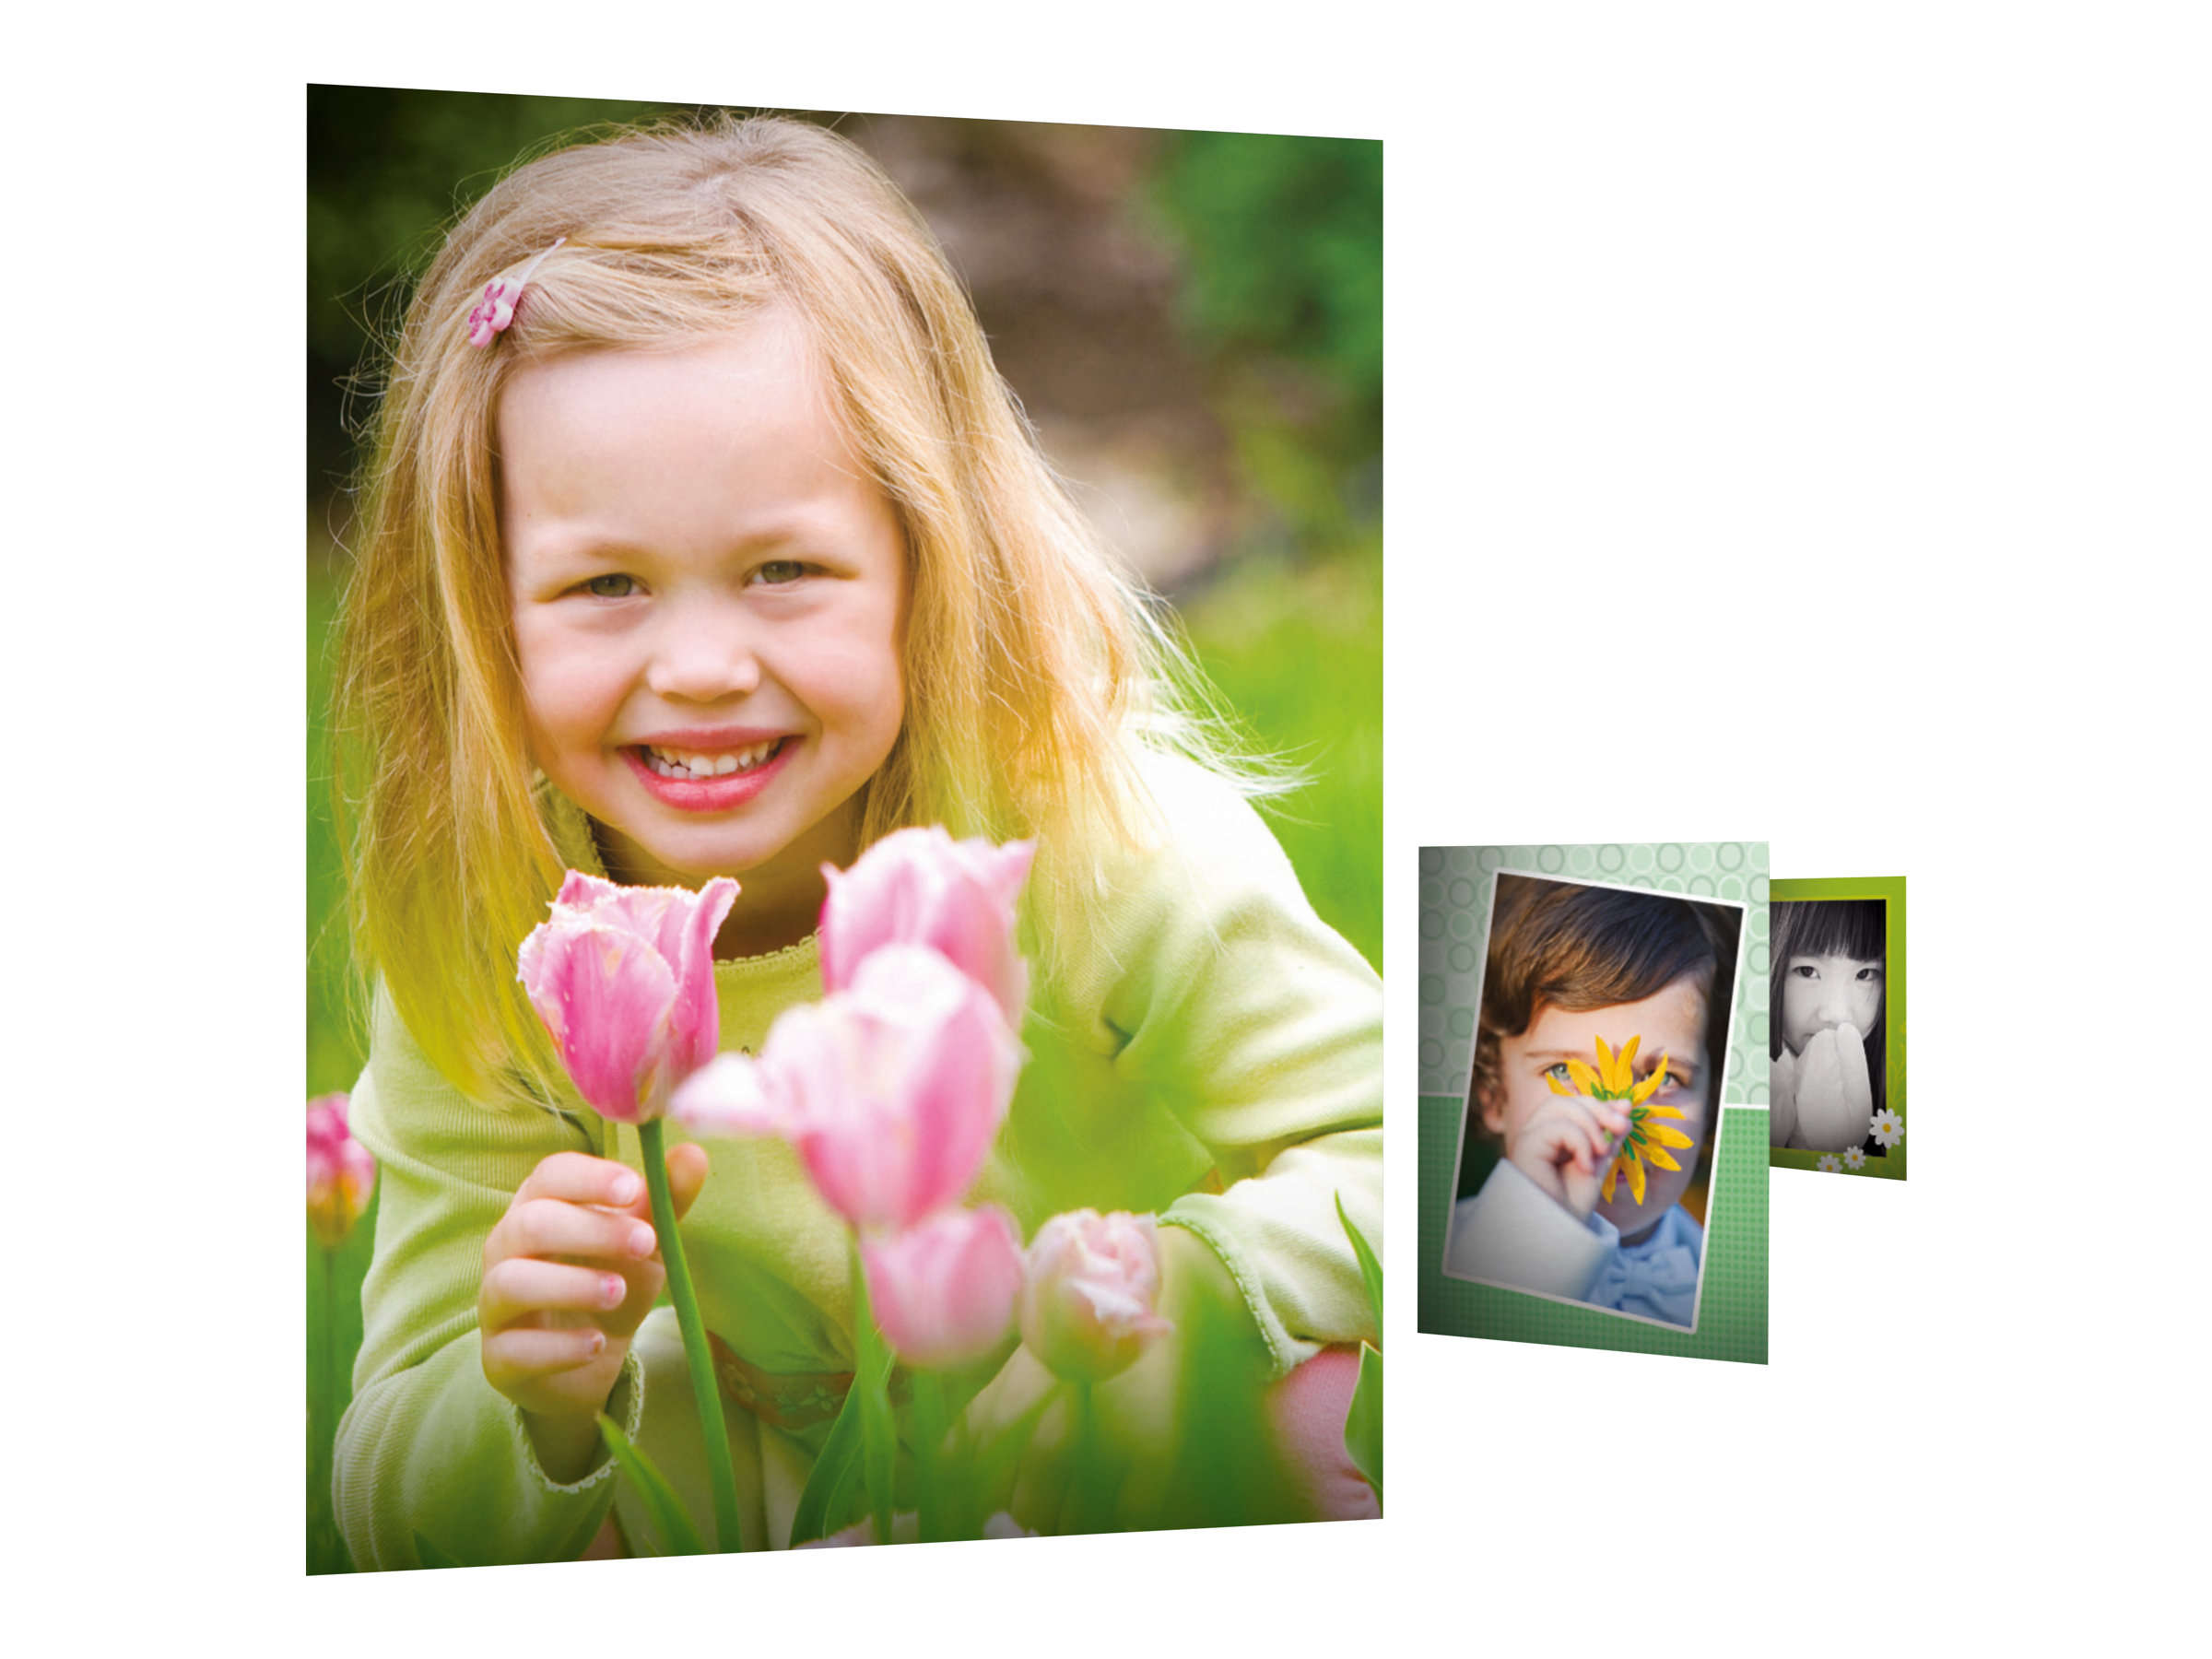 HP Everyday Photo Paper - Glänzend - A4 (210 x 297 mm) - 200 g/m² - 100 Blatt Fotopapier - für Deskjet 2050 J510; Officejet 6000 E609, 76XX; PageWide MFP 377; PageWide Pro 452